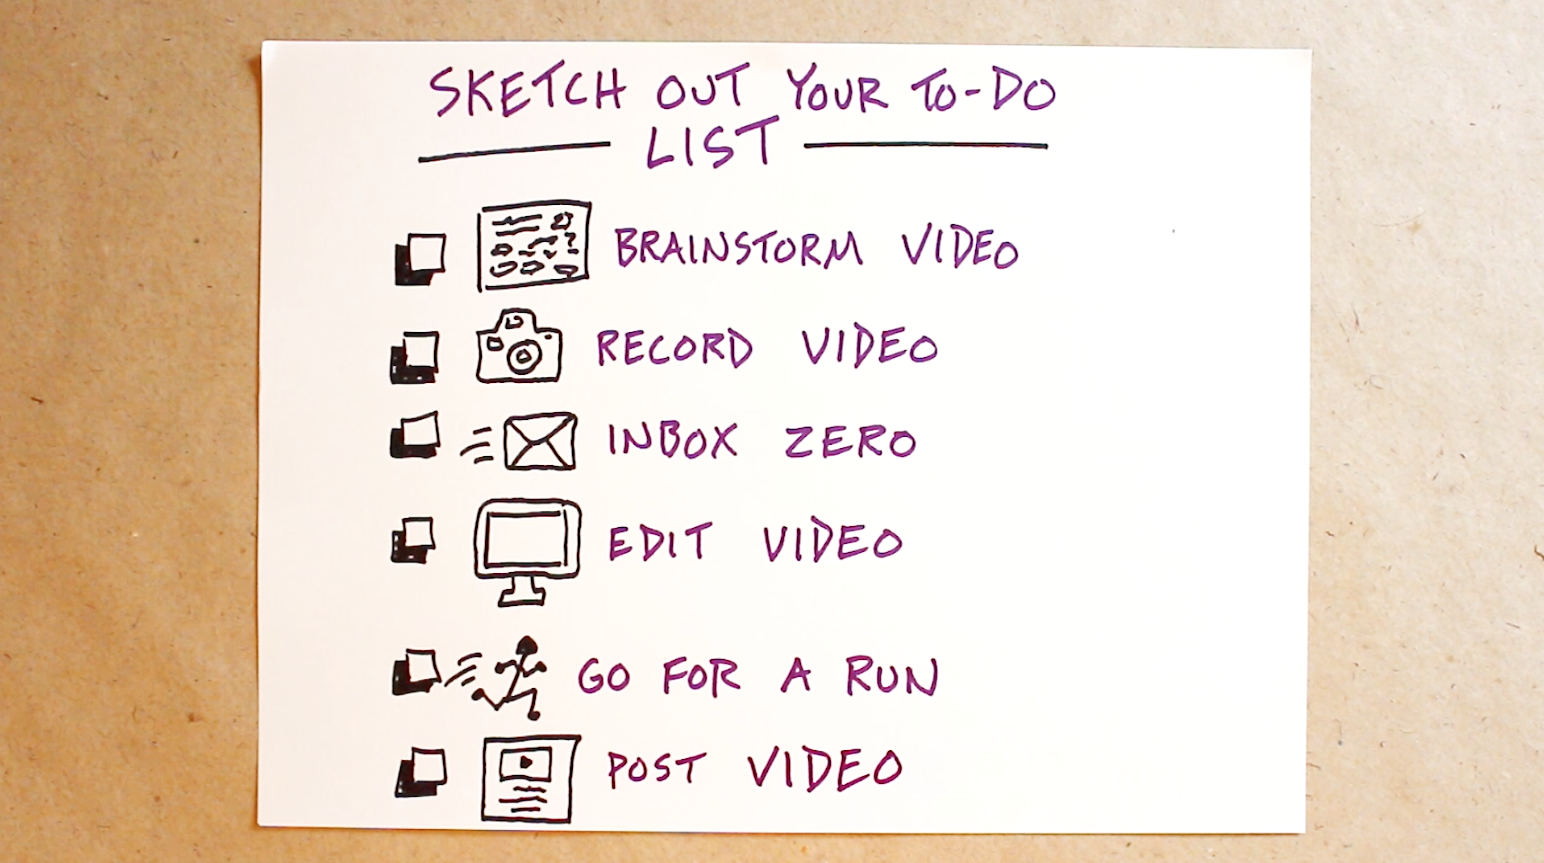 sketch out your to do list verbal to visual video doug neill